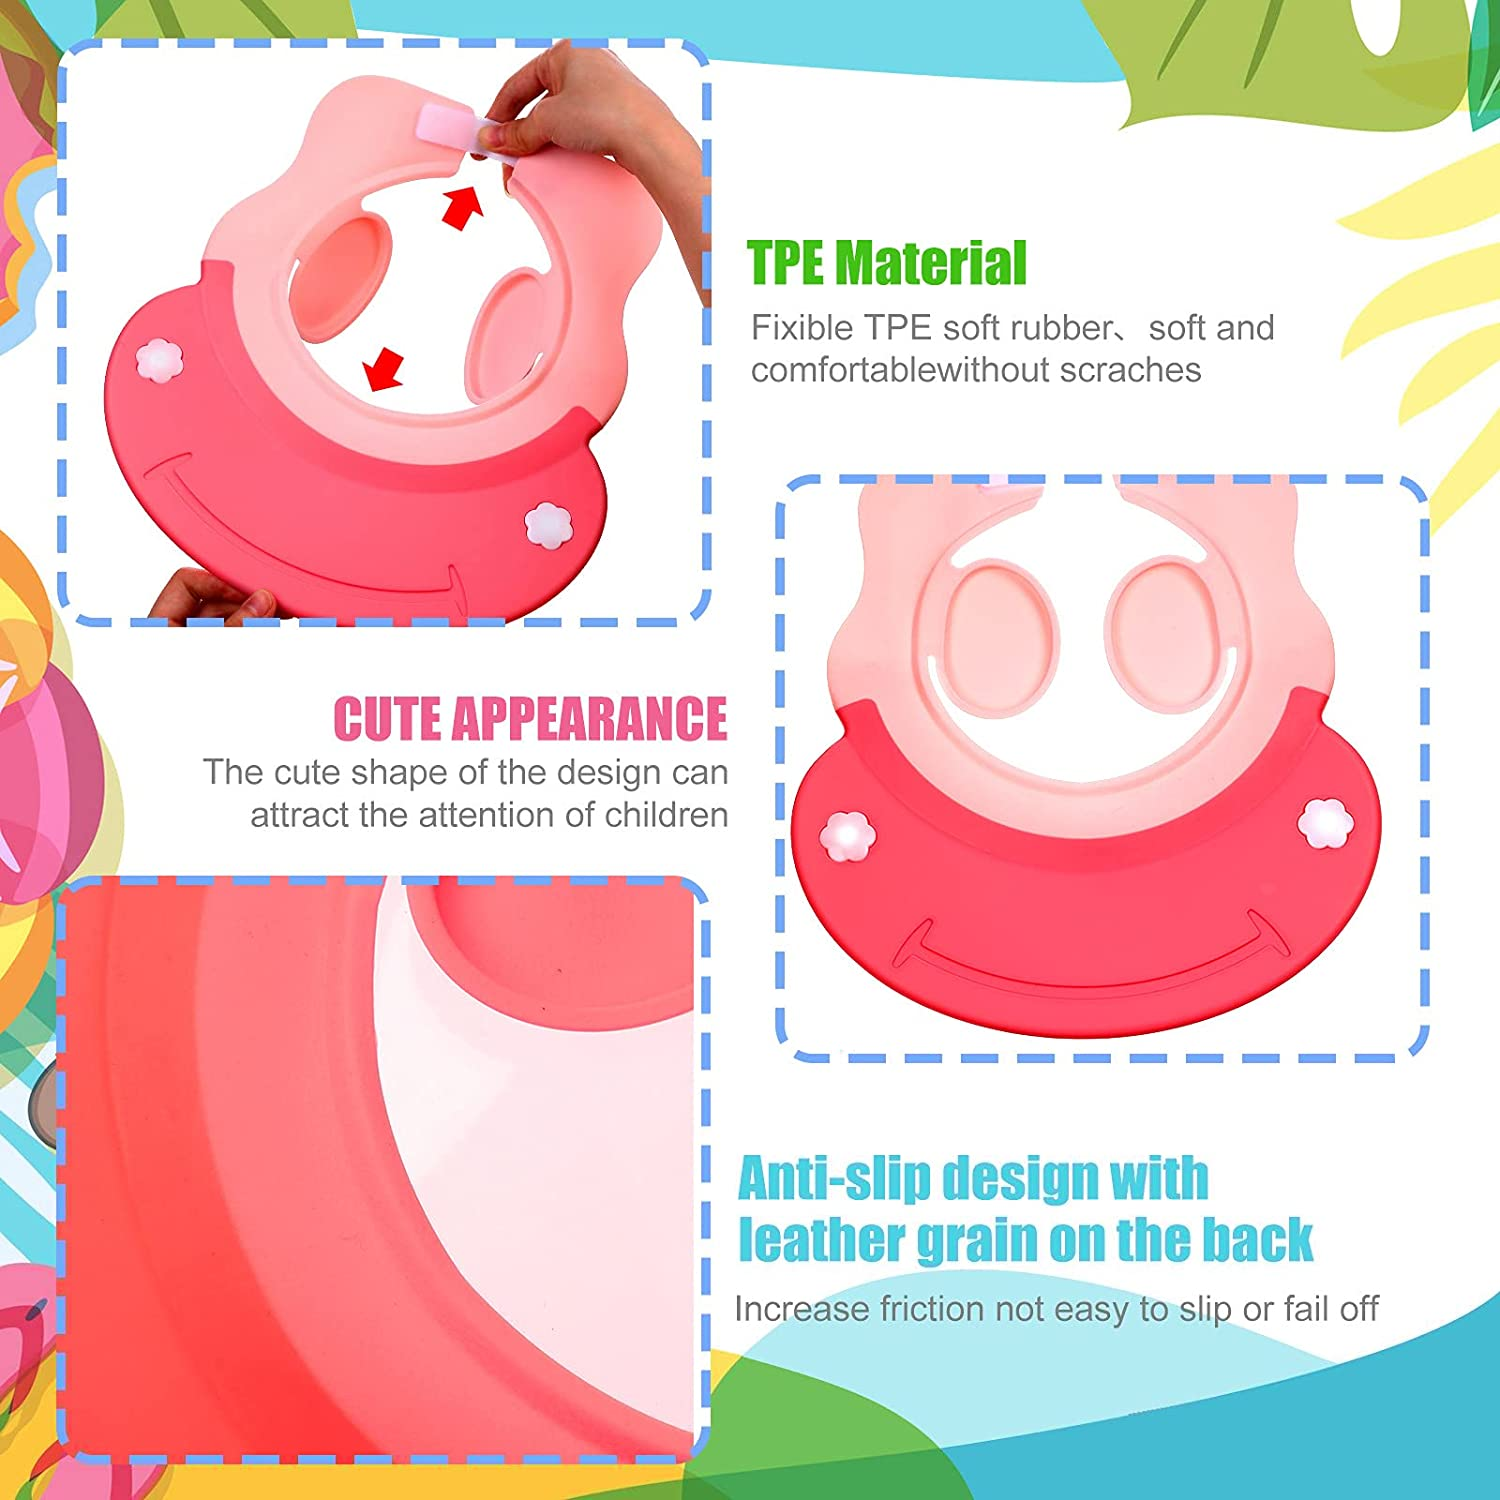 2 Pieces Baby Shower Cap Silicone Baby Bathing Hat Waterproof Children Shower Visor Hat Adjustable Shampoo Bath Cap with Eyes Ears Protection for Infants Toddlers Kids Children, Pink and Blue